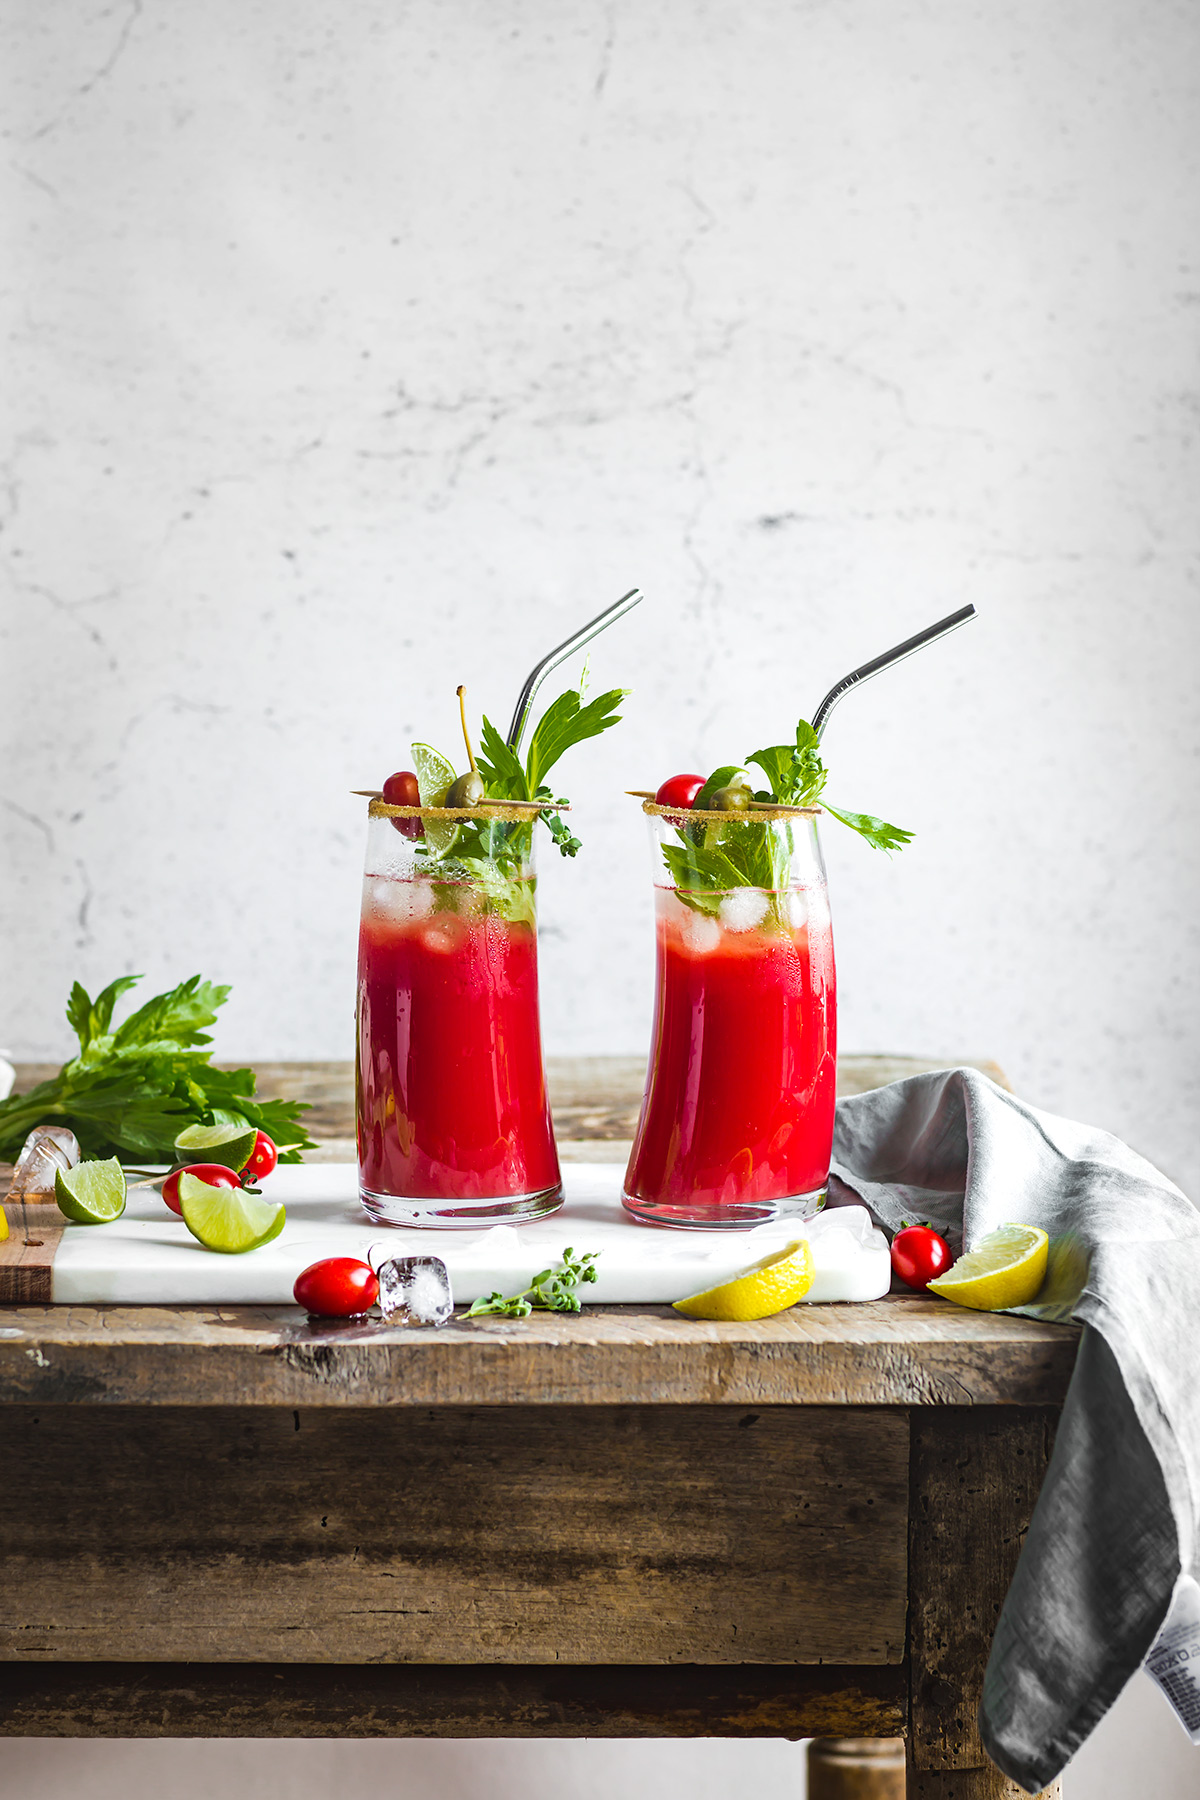 ricetta Bloody Mary Analcolico al Kefir d acqua per brunch #healthy cocktail vegan senza glutine Vegan Water Kefir Virgin Mary recipe #cocktail